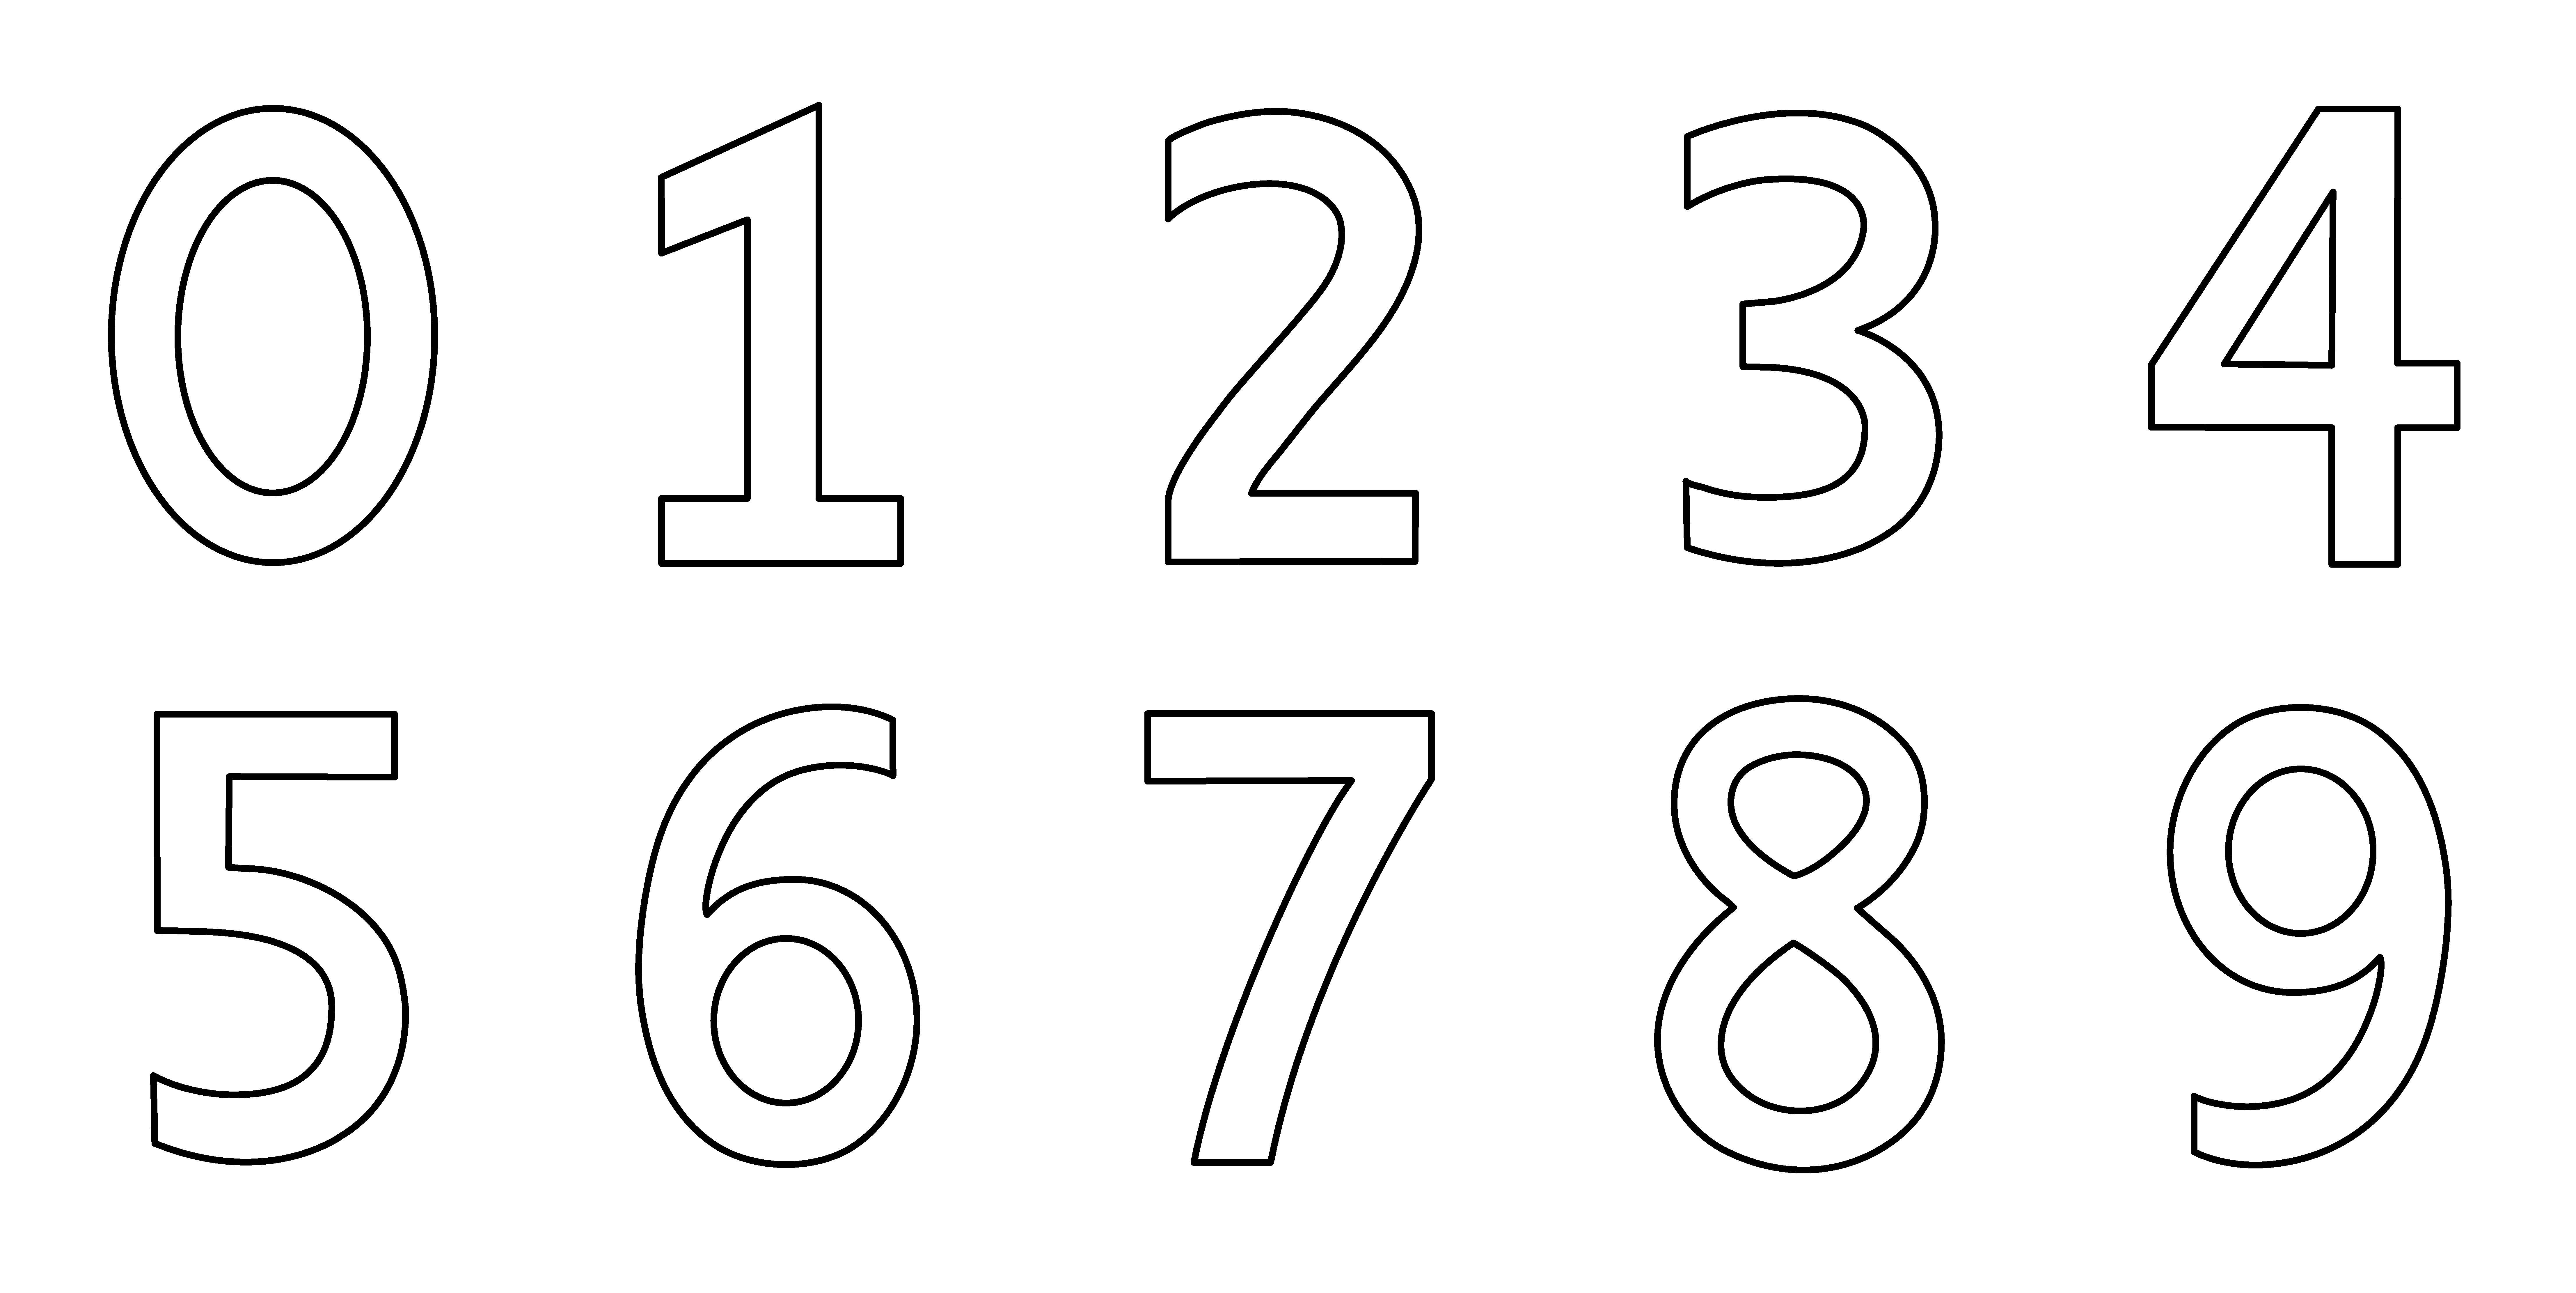 Free Number 9 Cliparts Black Download Free Clip Art Free Clip Art On Clipart Library